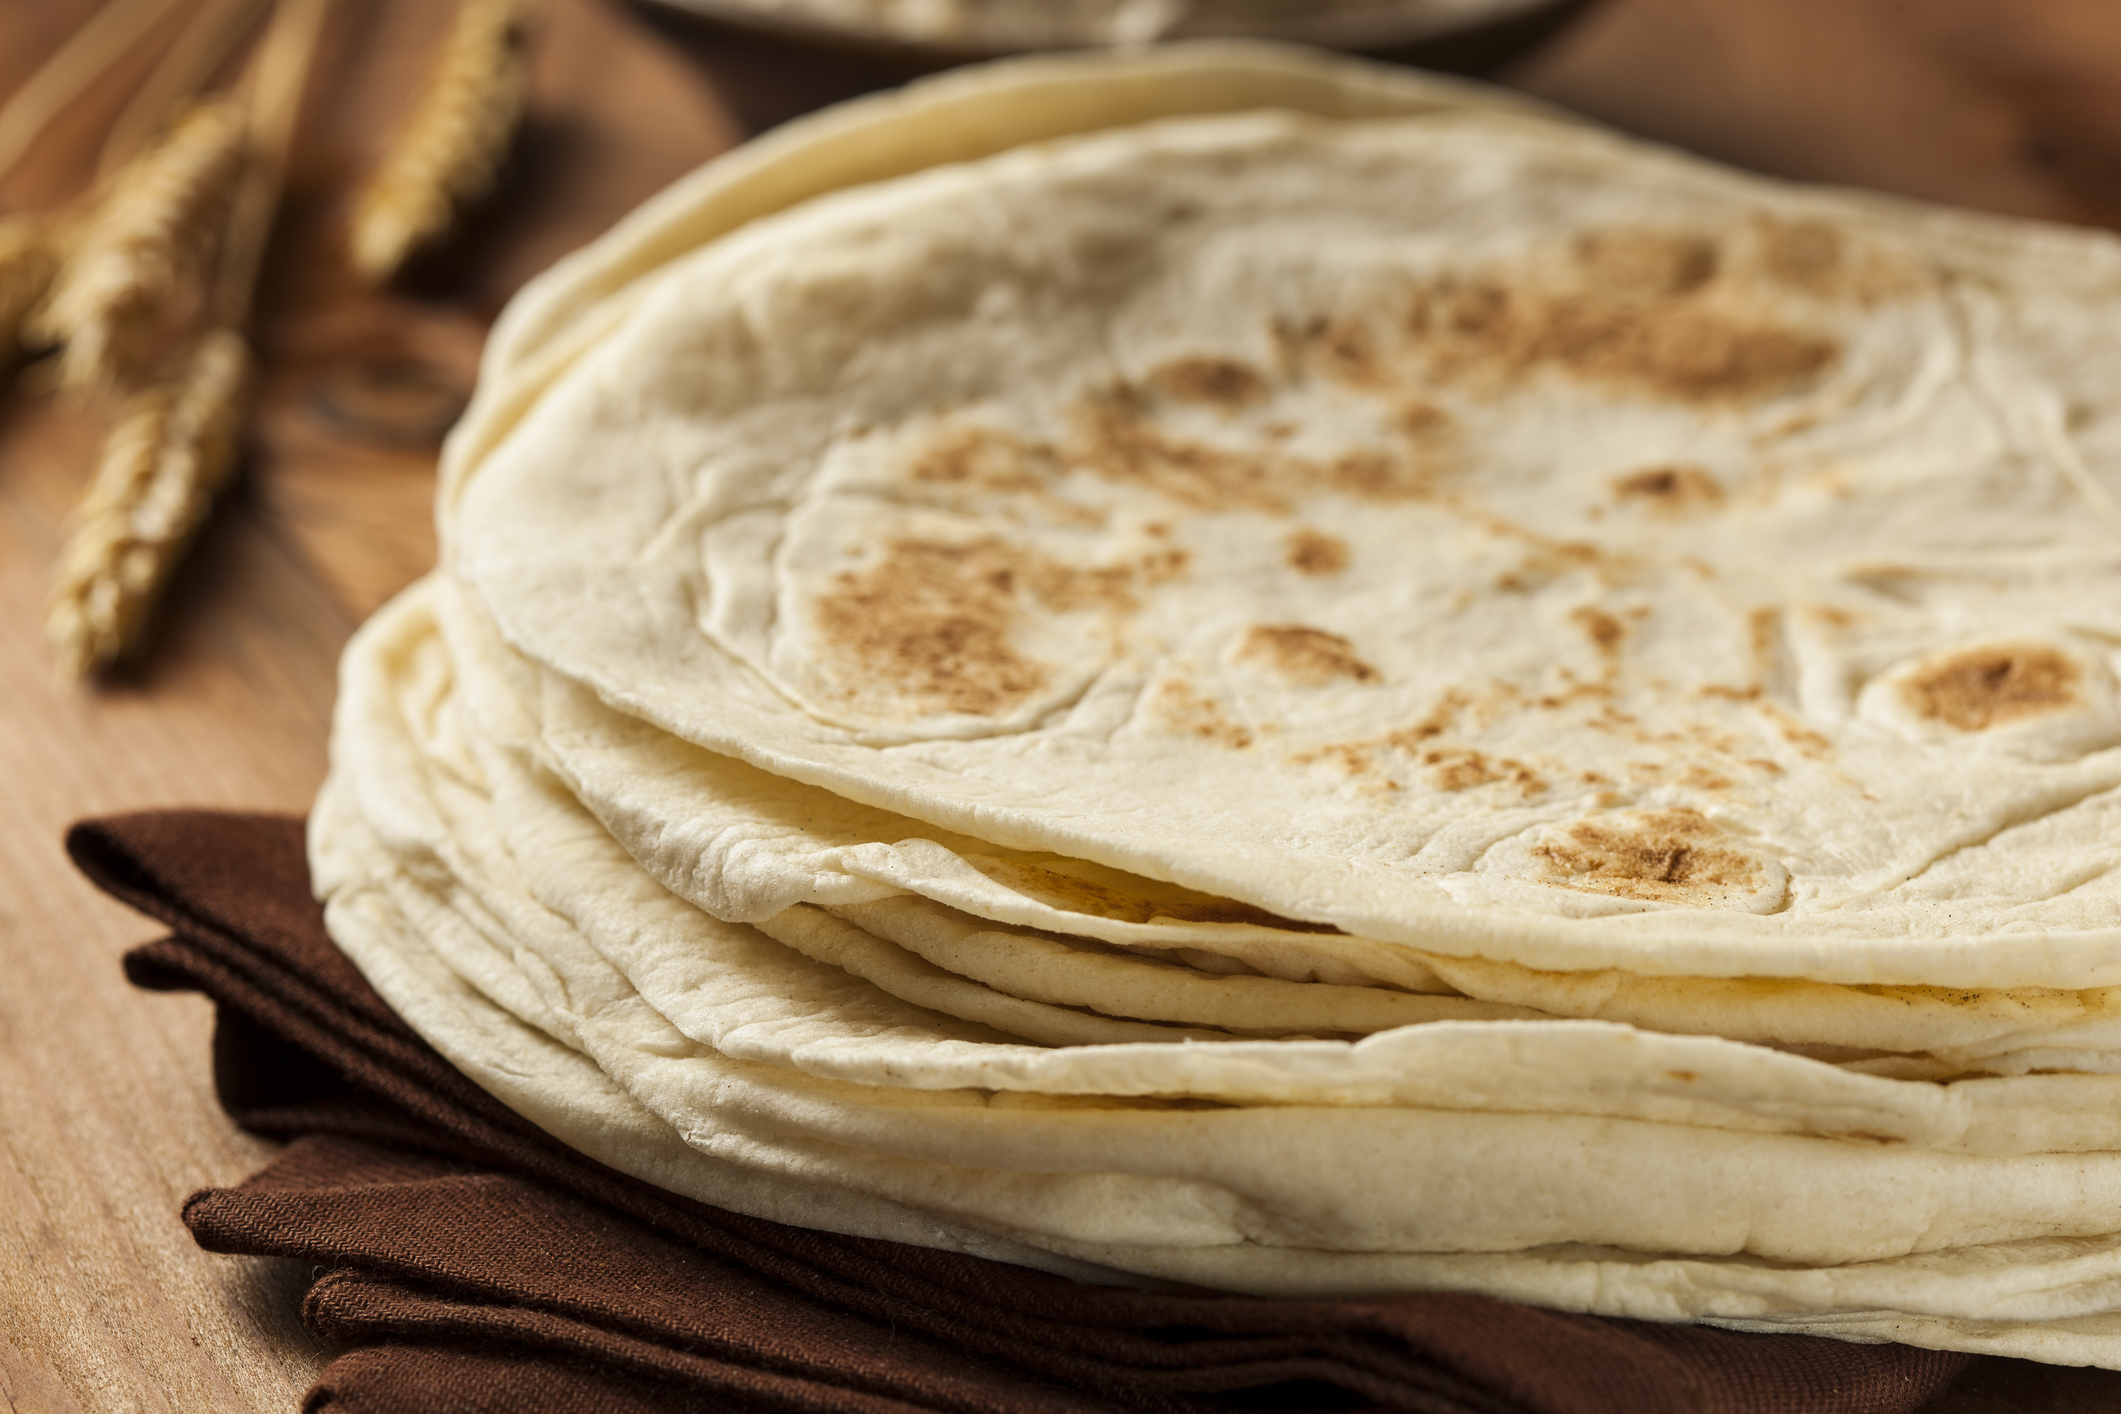 Mission Foods, Tortilla Manufacturer Chooses Indiana for Midwest Expansion